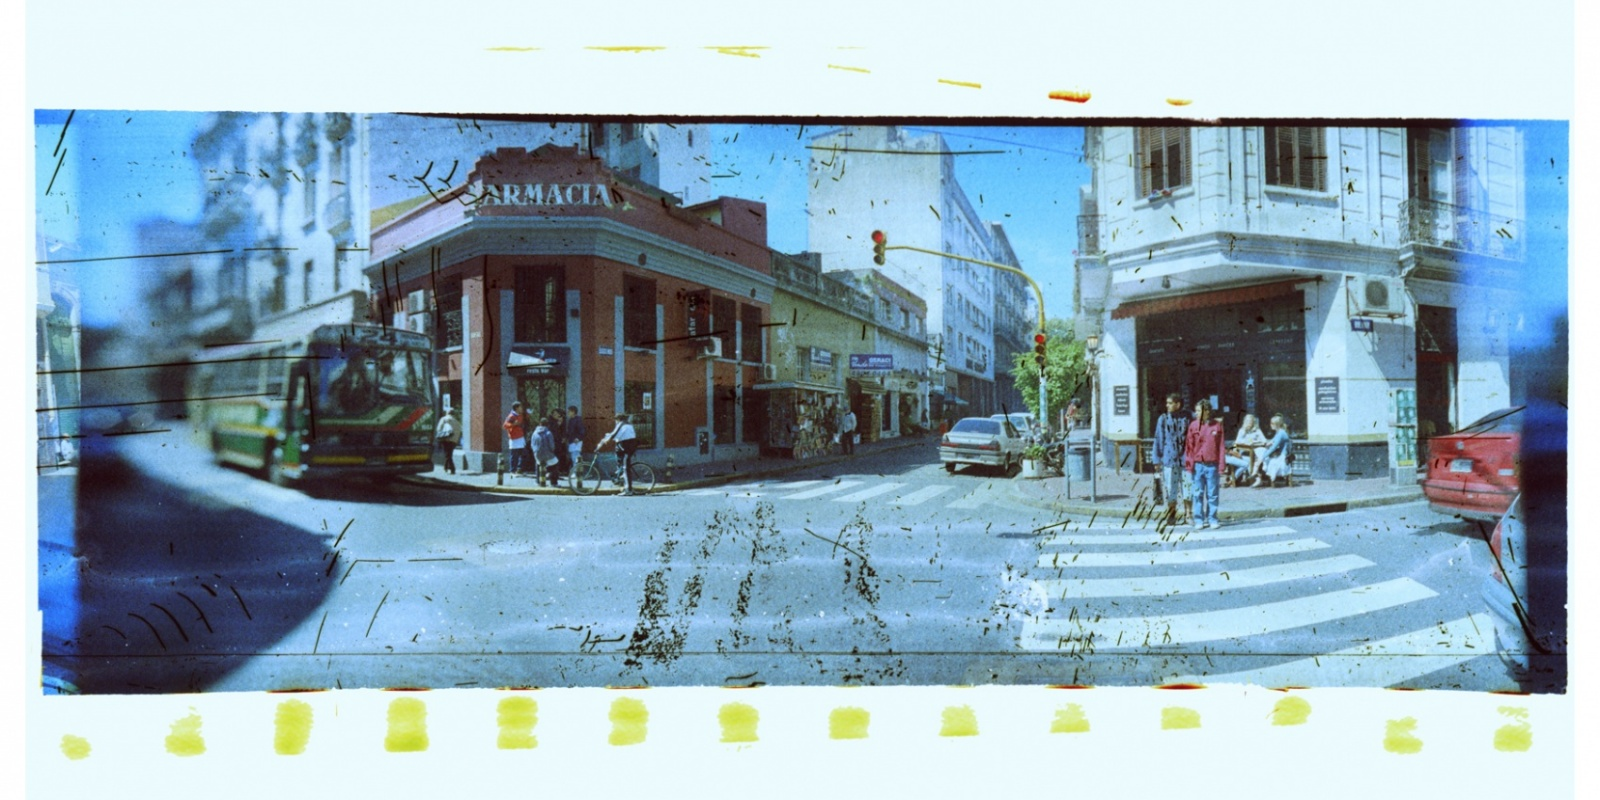 linda cartridge photographer and artist - Las Calles Bolivar II